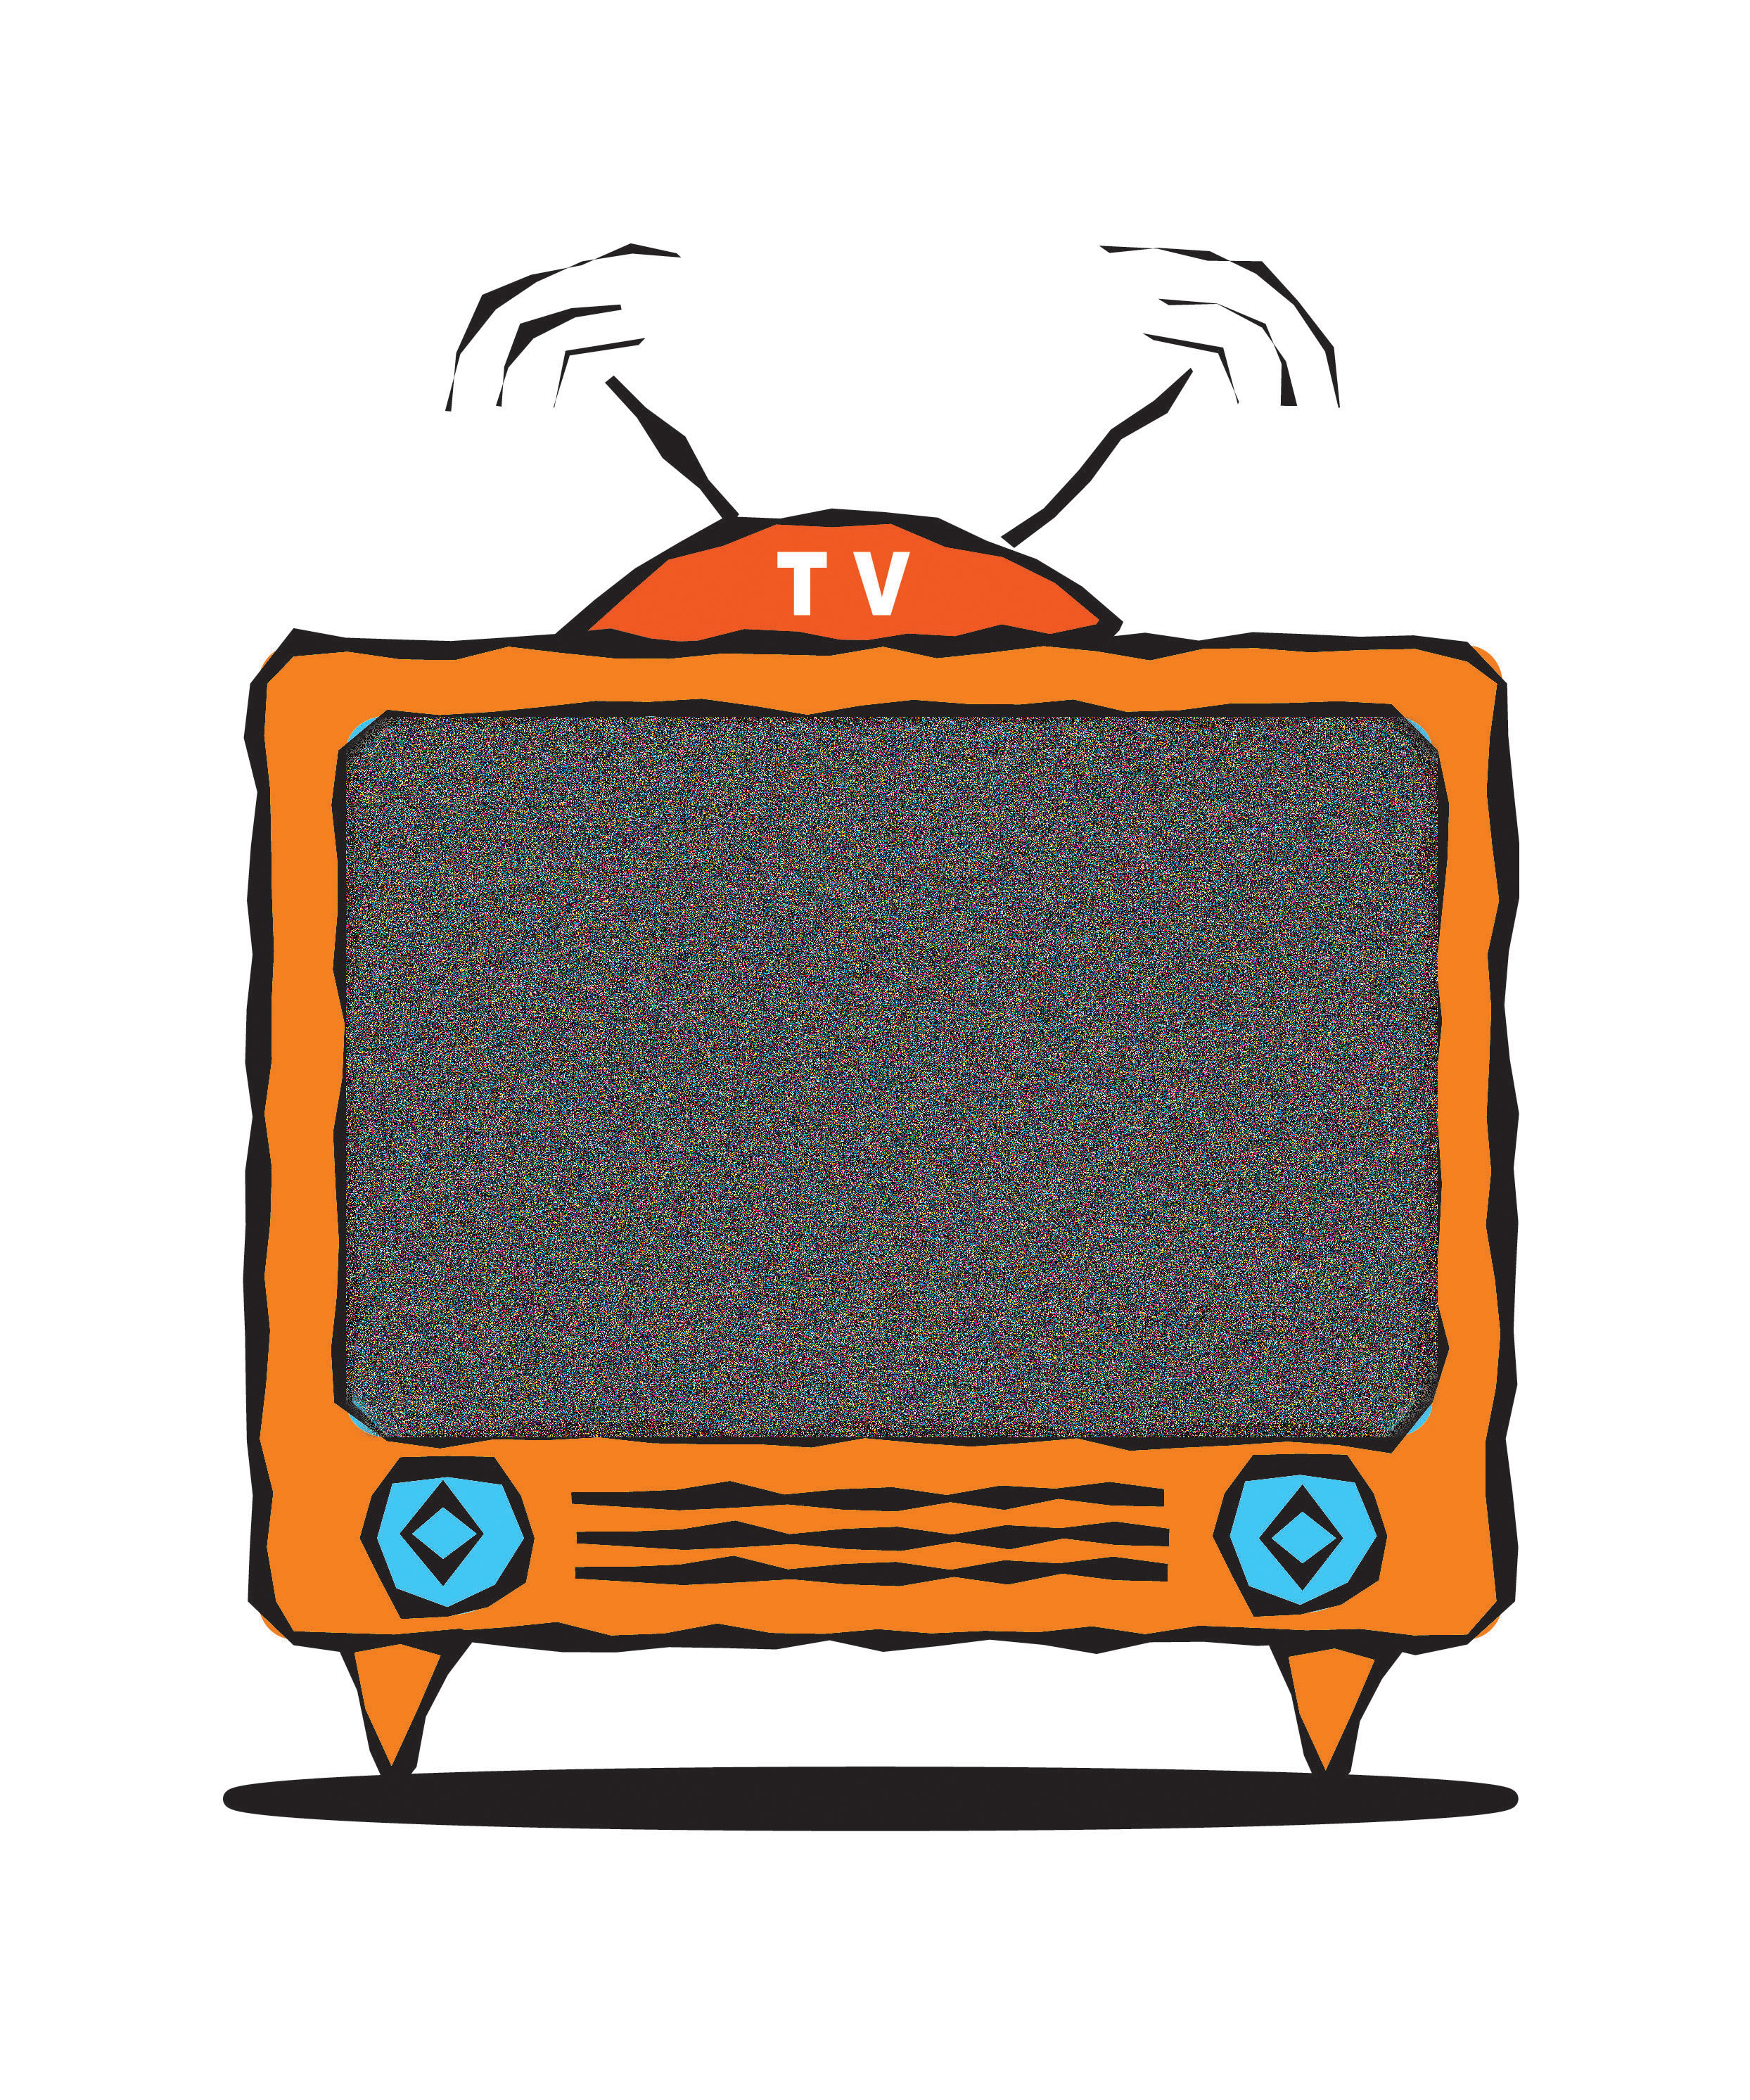 Television cliparts